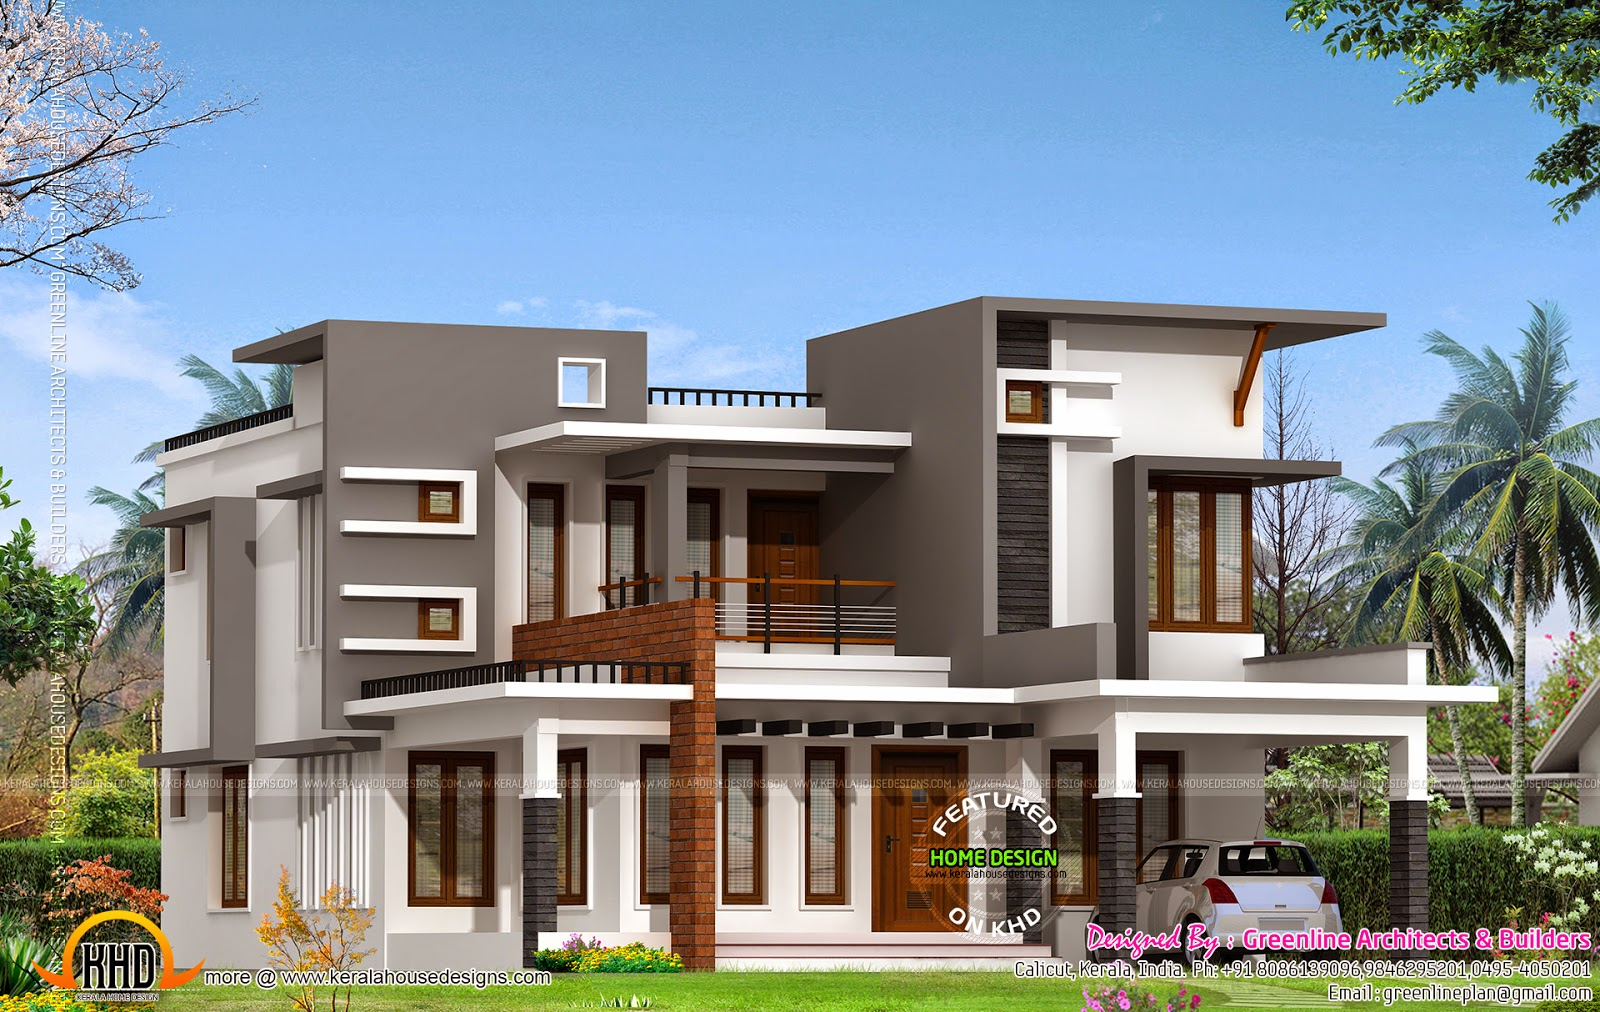 Contemporary House With Estimate Cost 28 Lakhs Kerala